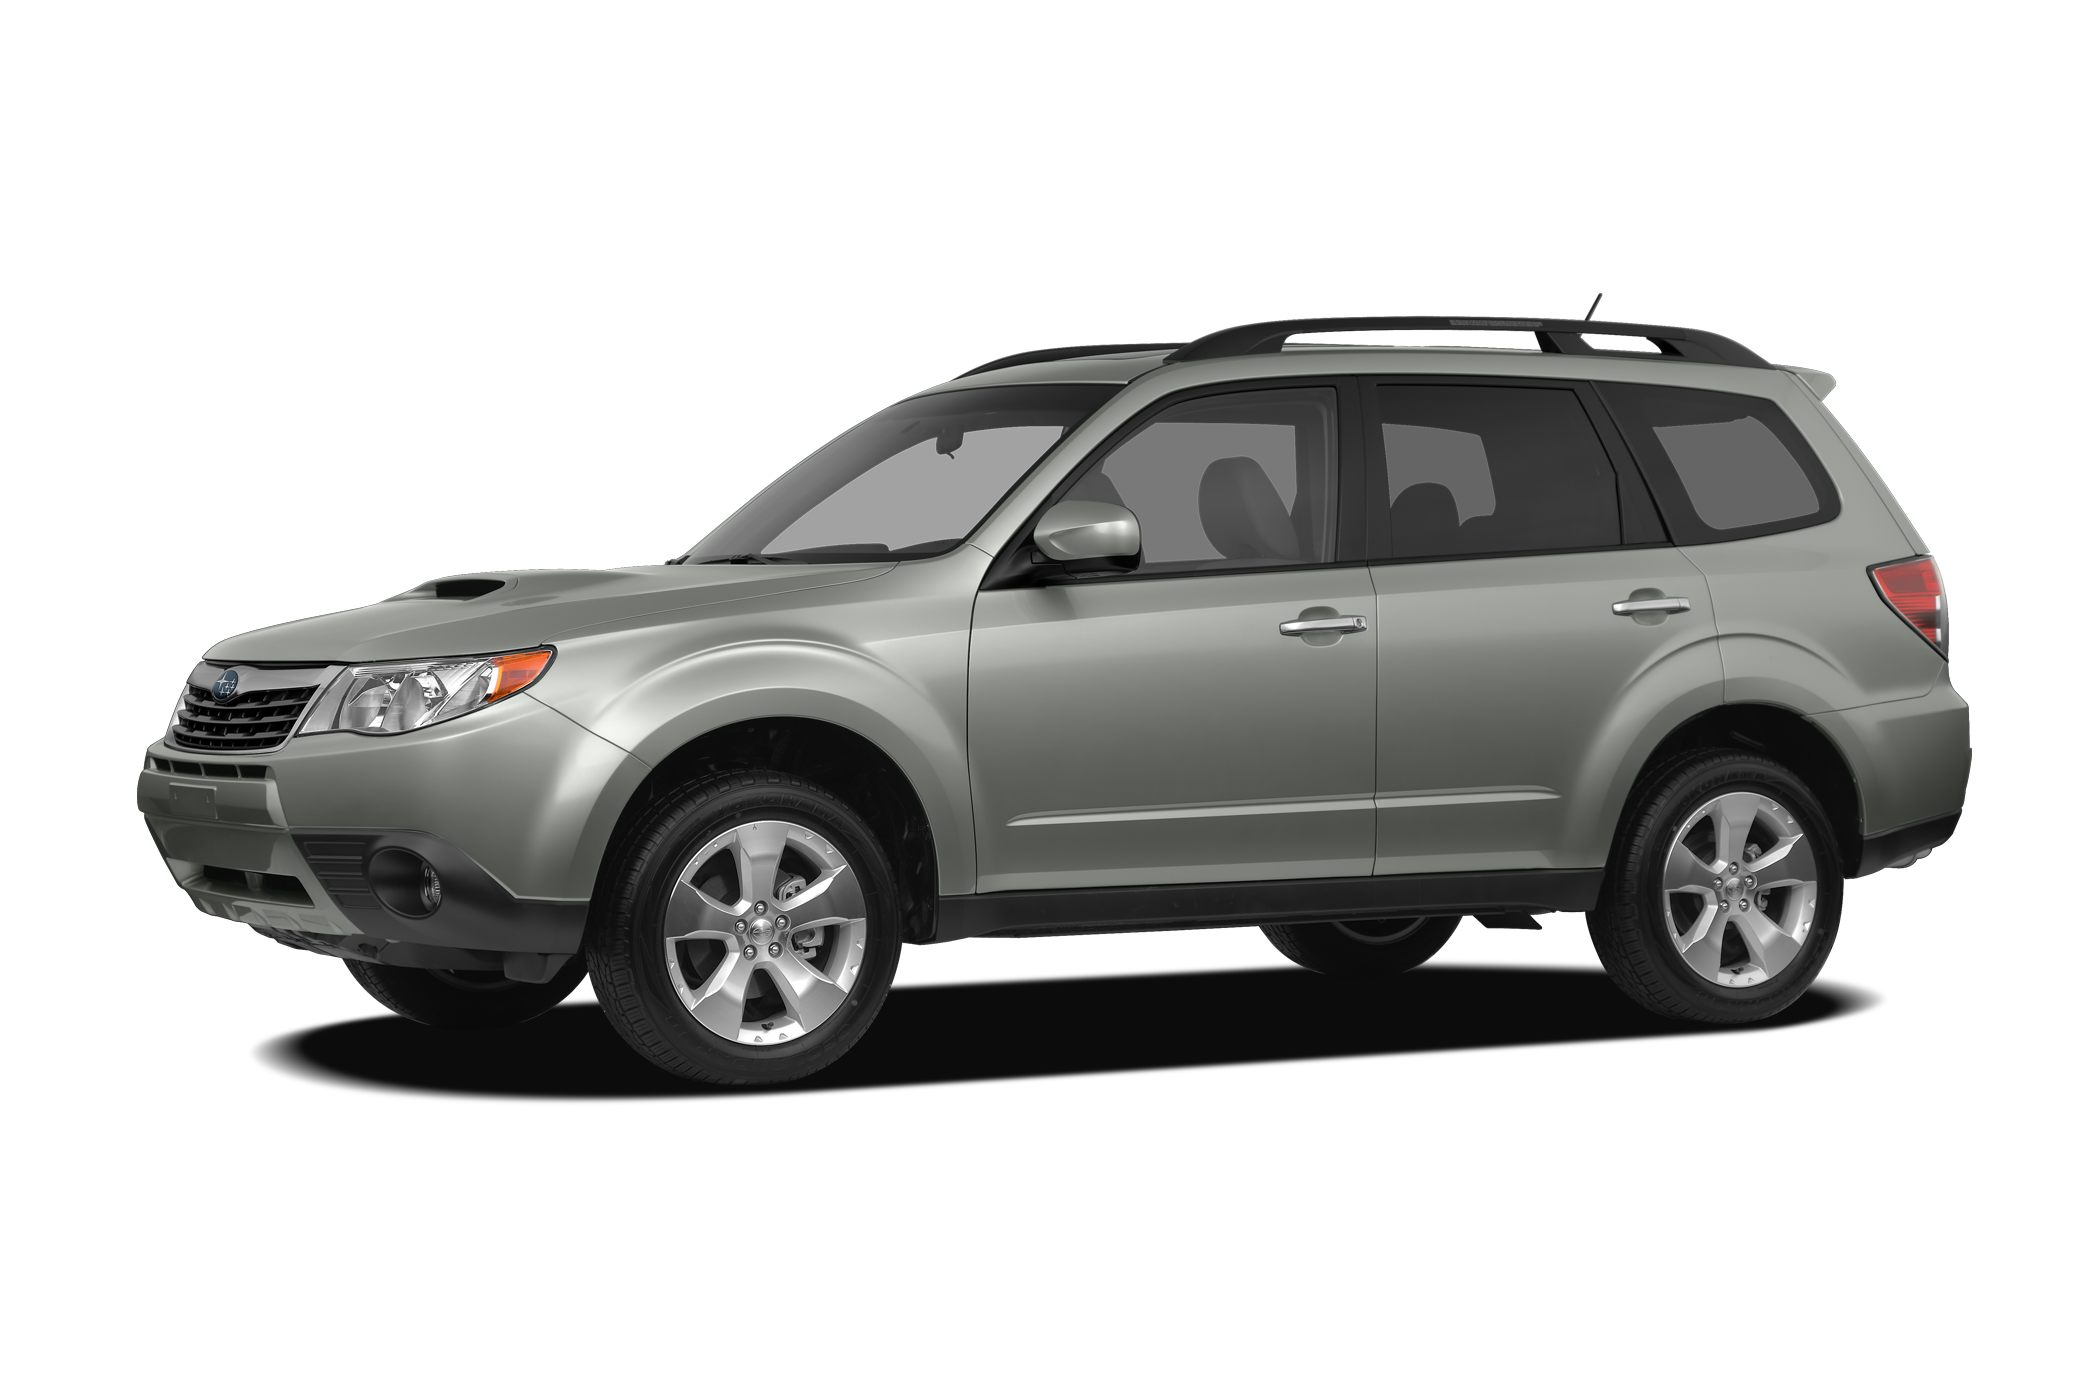 2010 subaru forester 25xt premium 4dr all wheel drive specs and 2010 subaru forester 25xt premium 4dr all wheel drive specs and prices vanachro Gallery